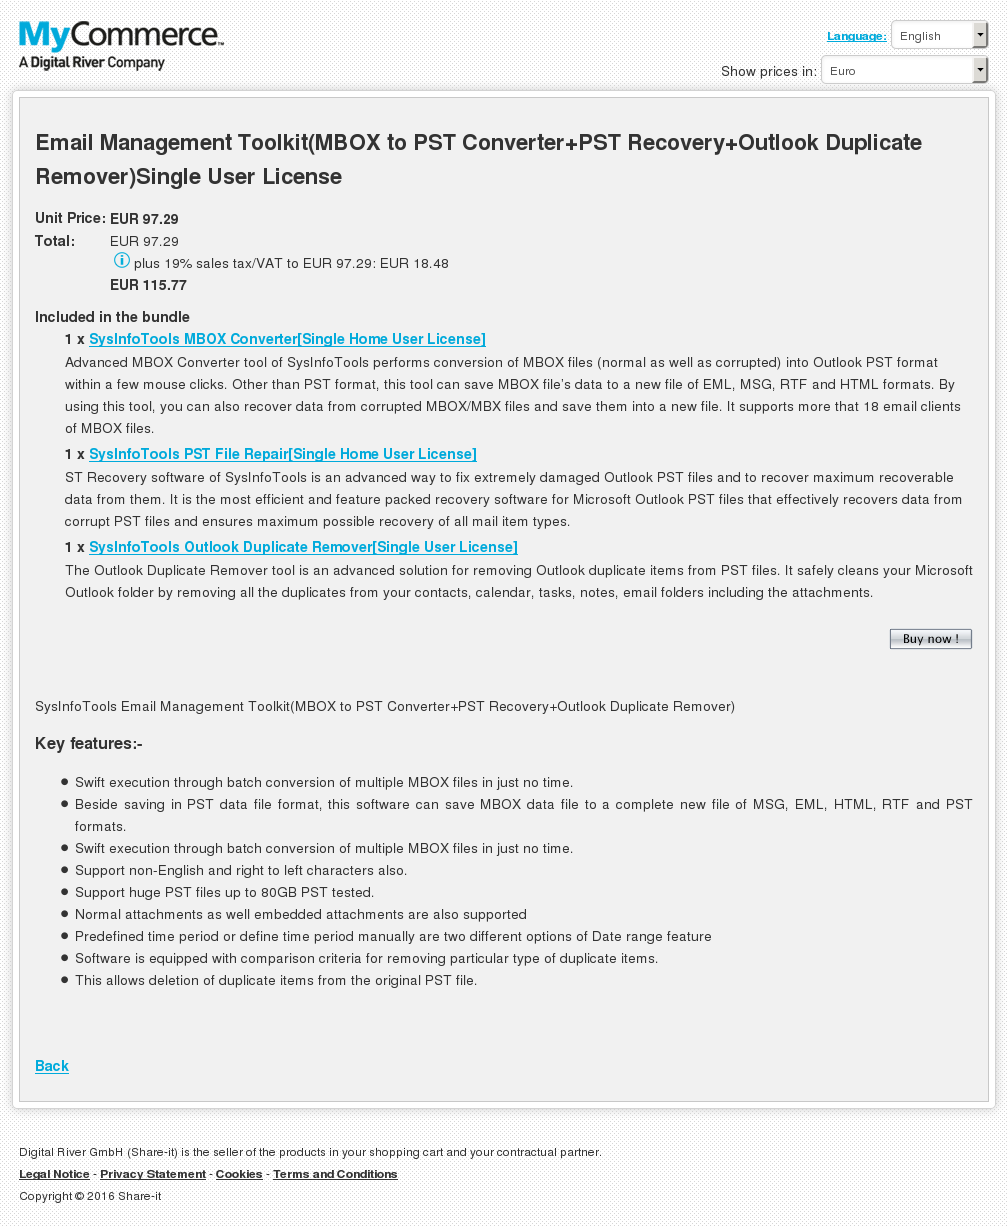 Email Management Toolkit Mbox Pst Converter Recovery Outlook Duplicate Remover Single User License Features